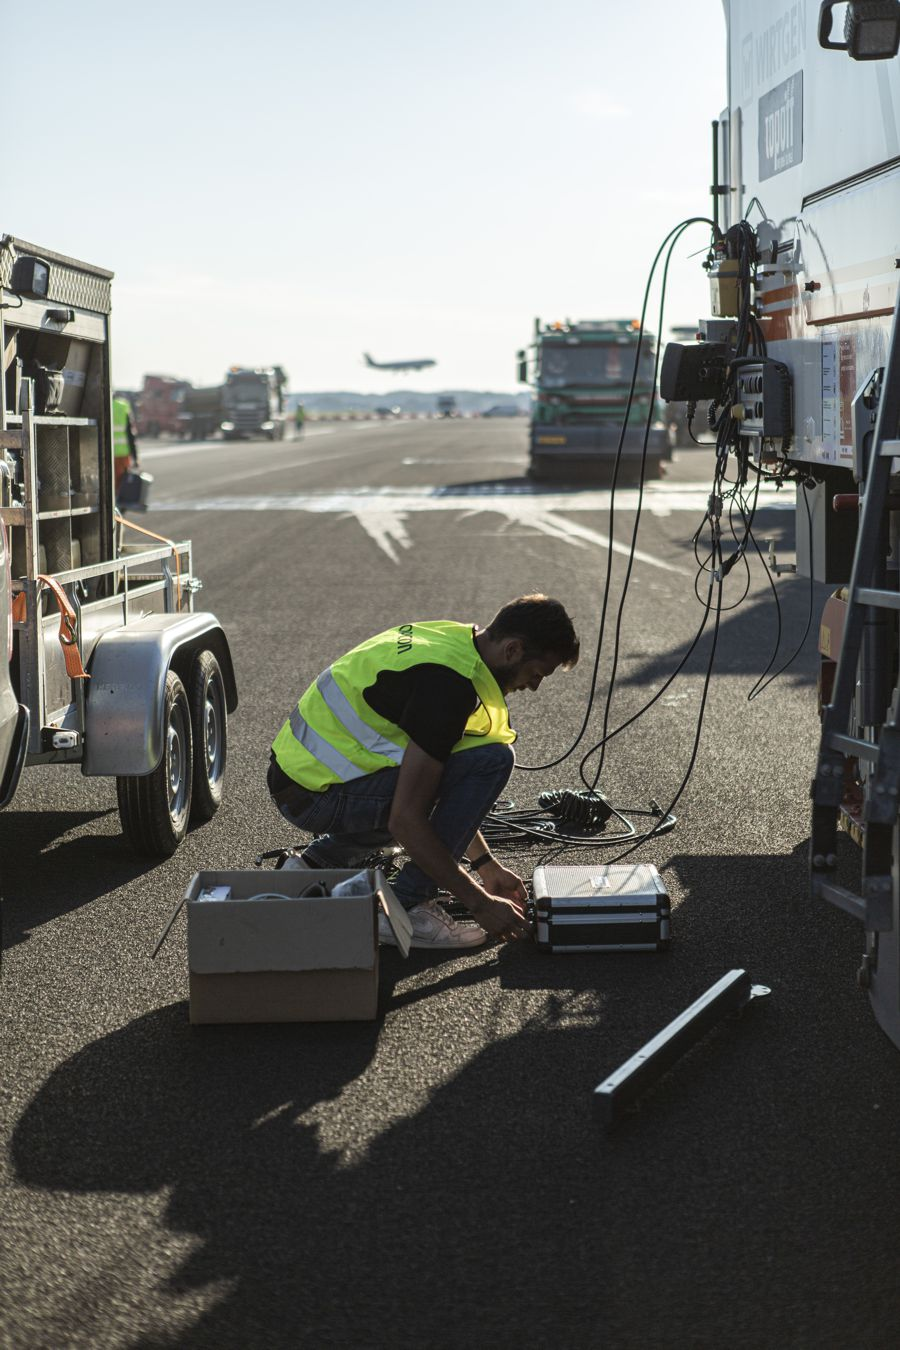 Topcon intelligent solutions get Brussels Airport ready for take-off